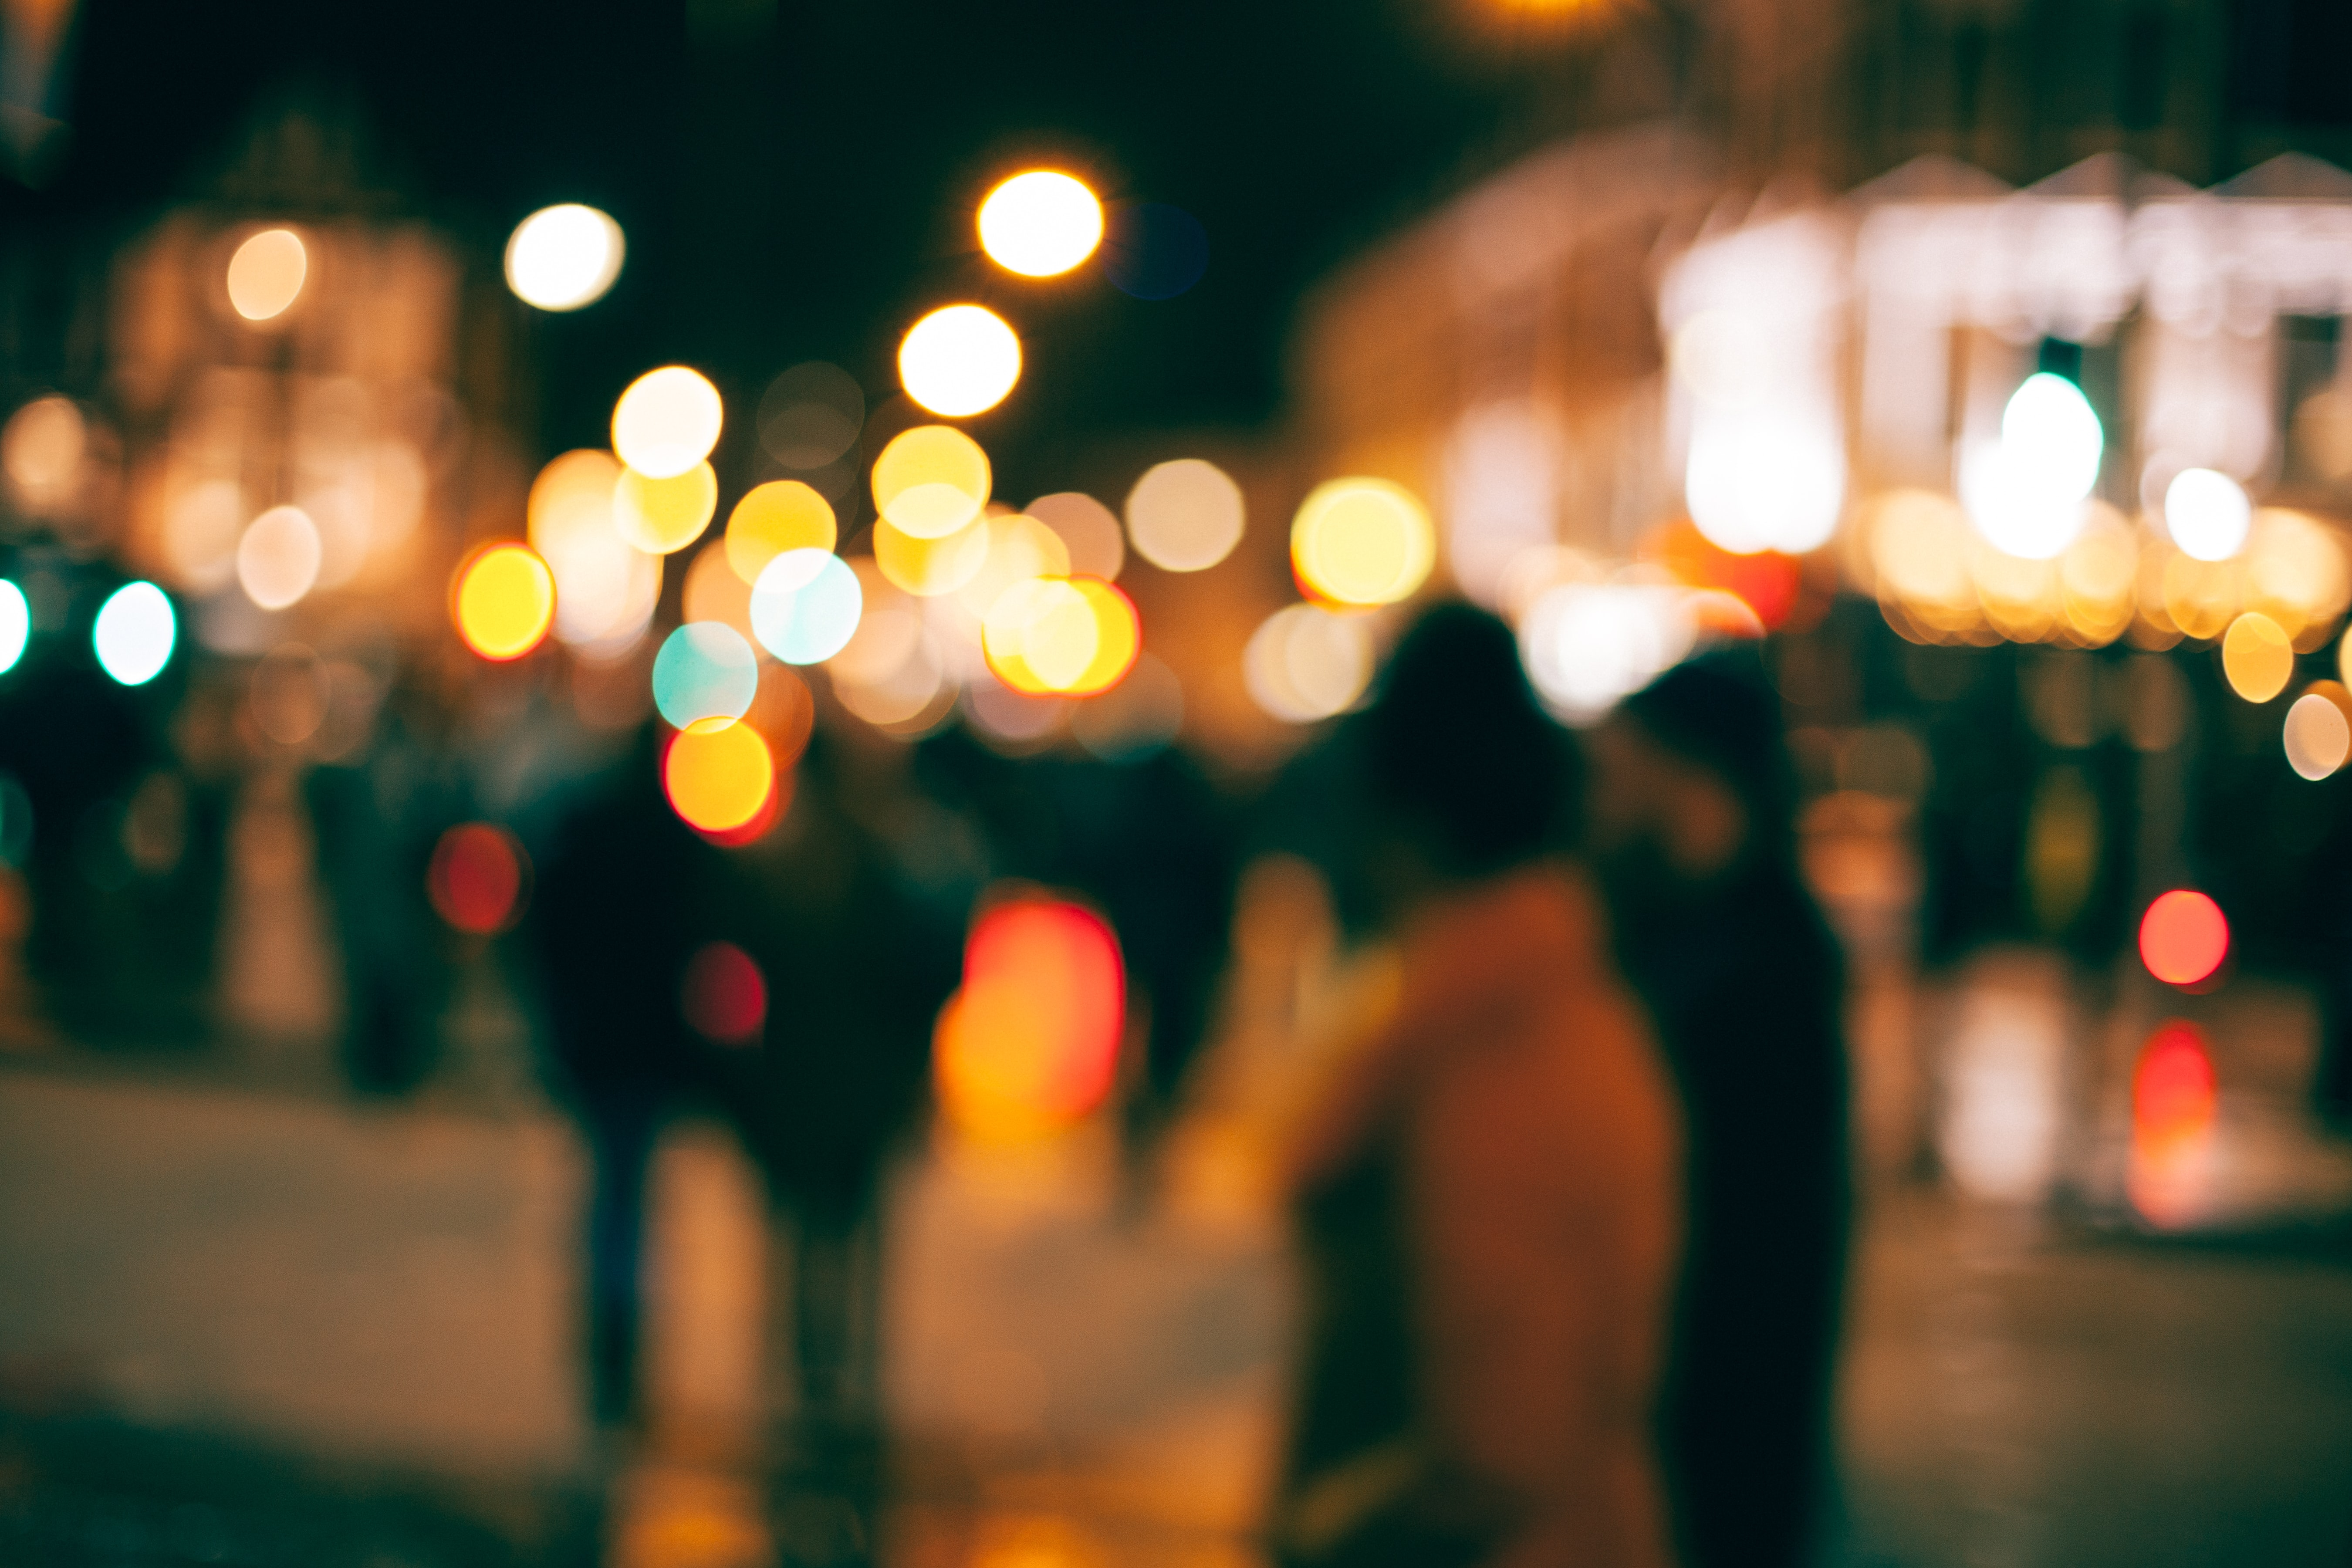 An out-of-focus look at people walking outside in a town at night with with blurs of dotted light all around